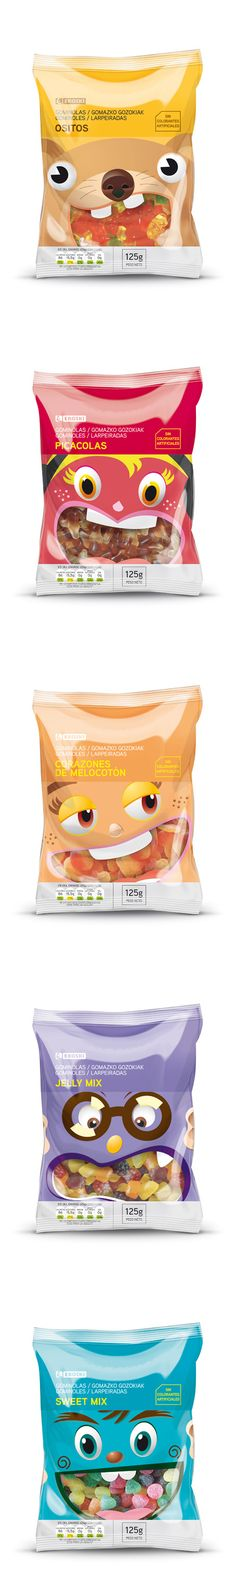 EROSKI snacks for the packaging smile file : ) PD